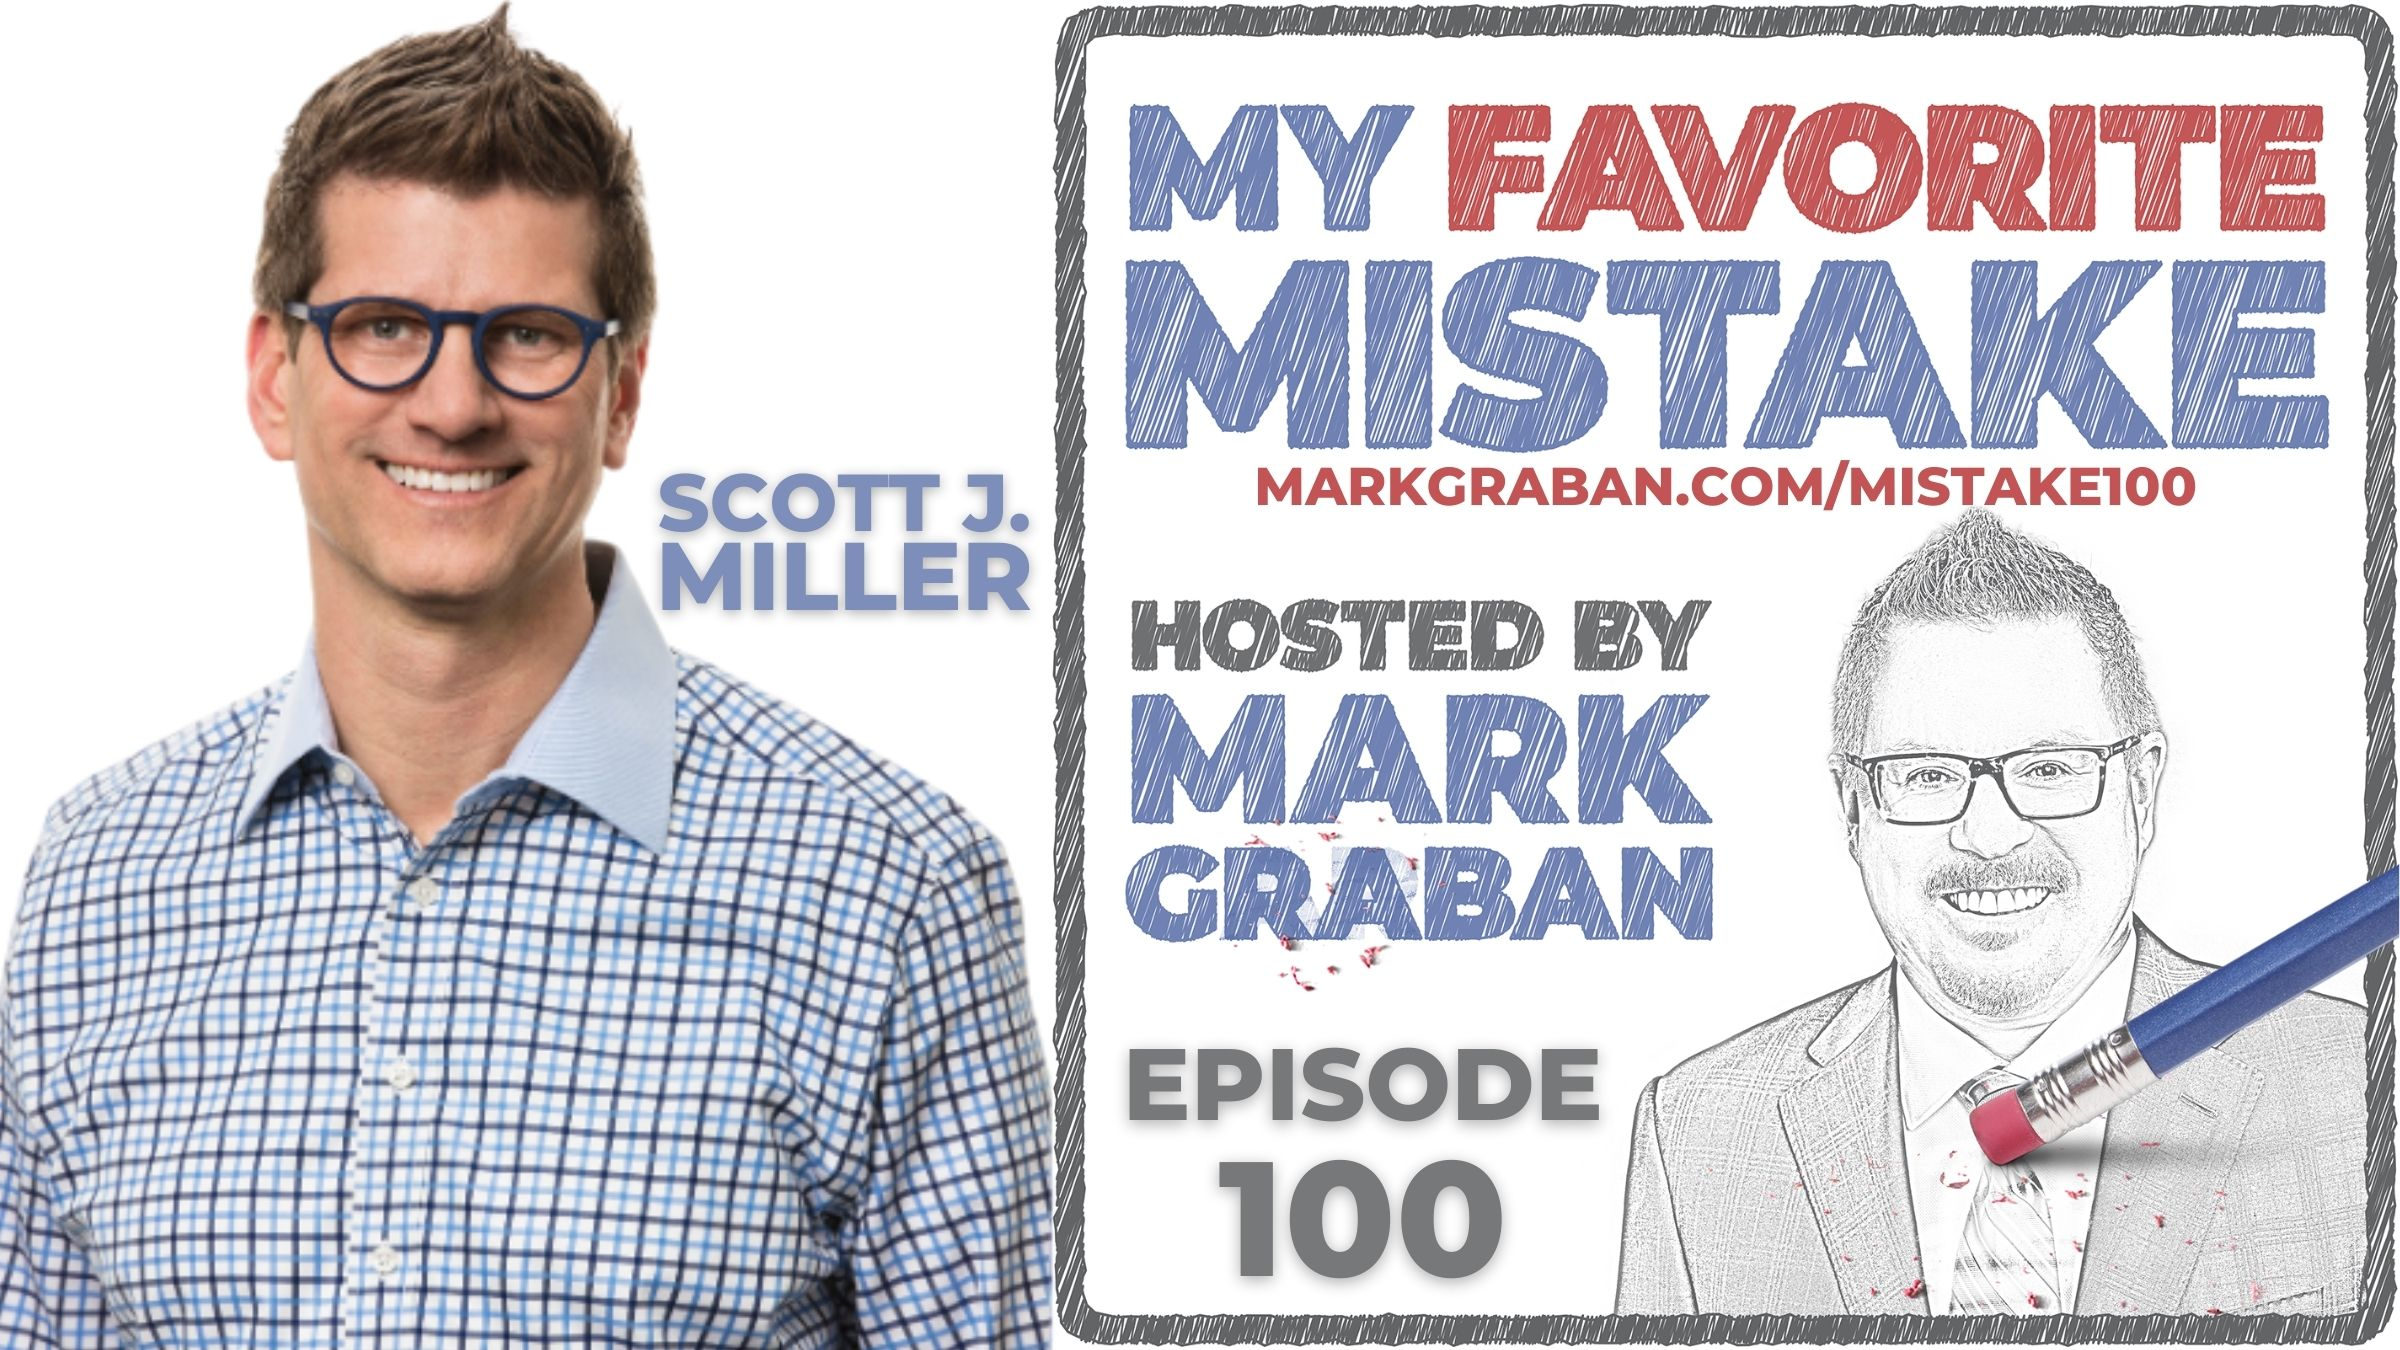 Scott Miller's Favorite Messes (or Mistakes) in Executive and Marketing Roles